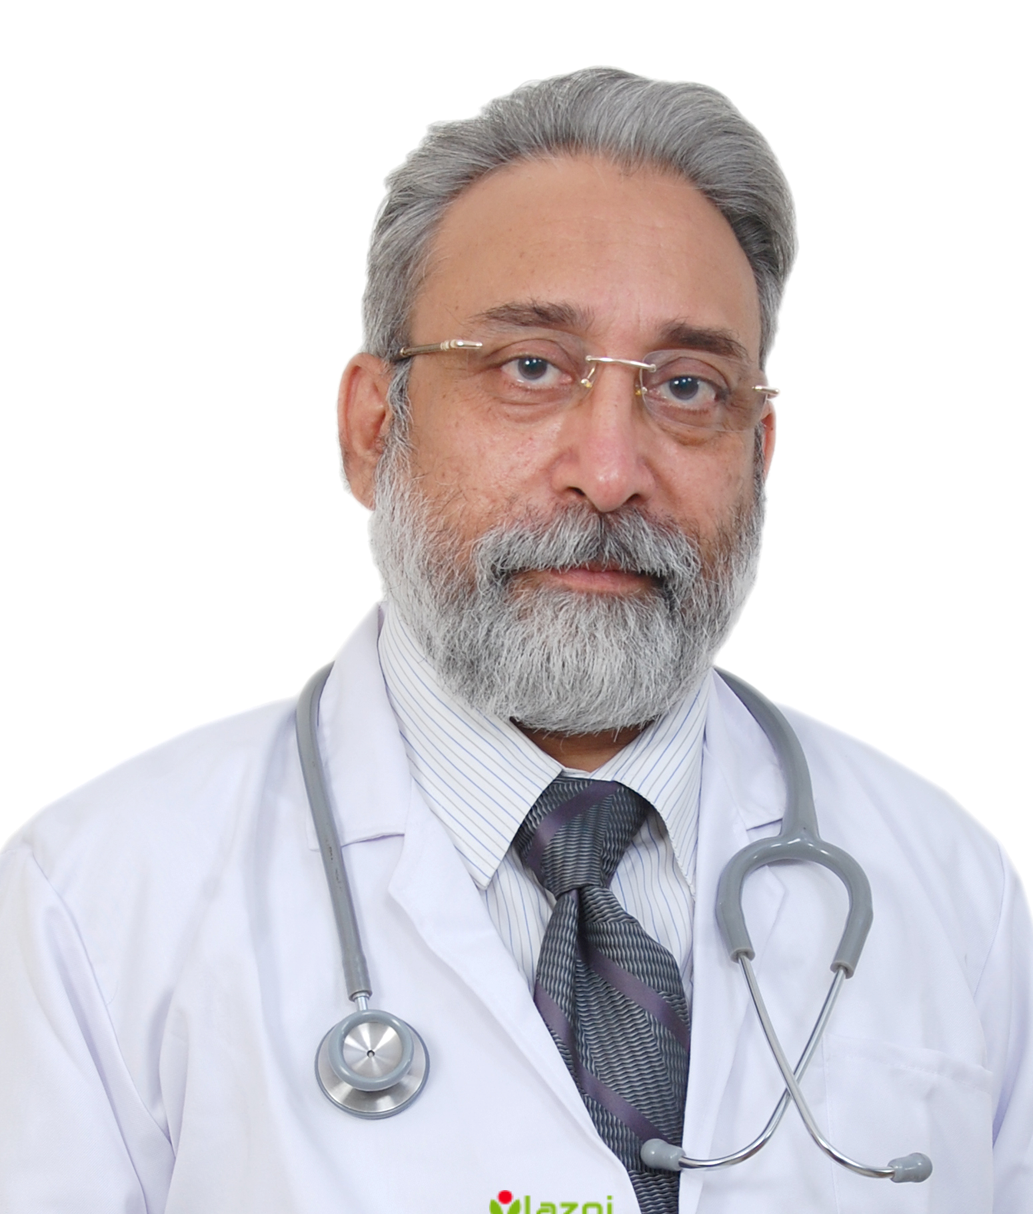 Ear in  North West Delhi, nose in  North West Delhi, throat in  North West Delhi, ENT specialist in  North West Delhi, sleep specialist in  North West Delhi, sinus doctor in  North West Delhi, strep throat in  North West Delhi, sinus in  North West Delhi, neck problem in  North West Delhi, hearing disorders in  North West Delhi, deafness in  North West Delhi, Sinusitis in  North West Delhi, nose injuries in  North West Delhi, common cold